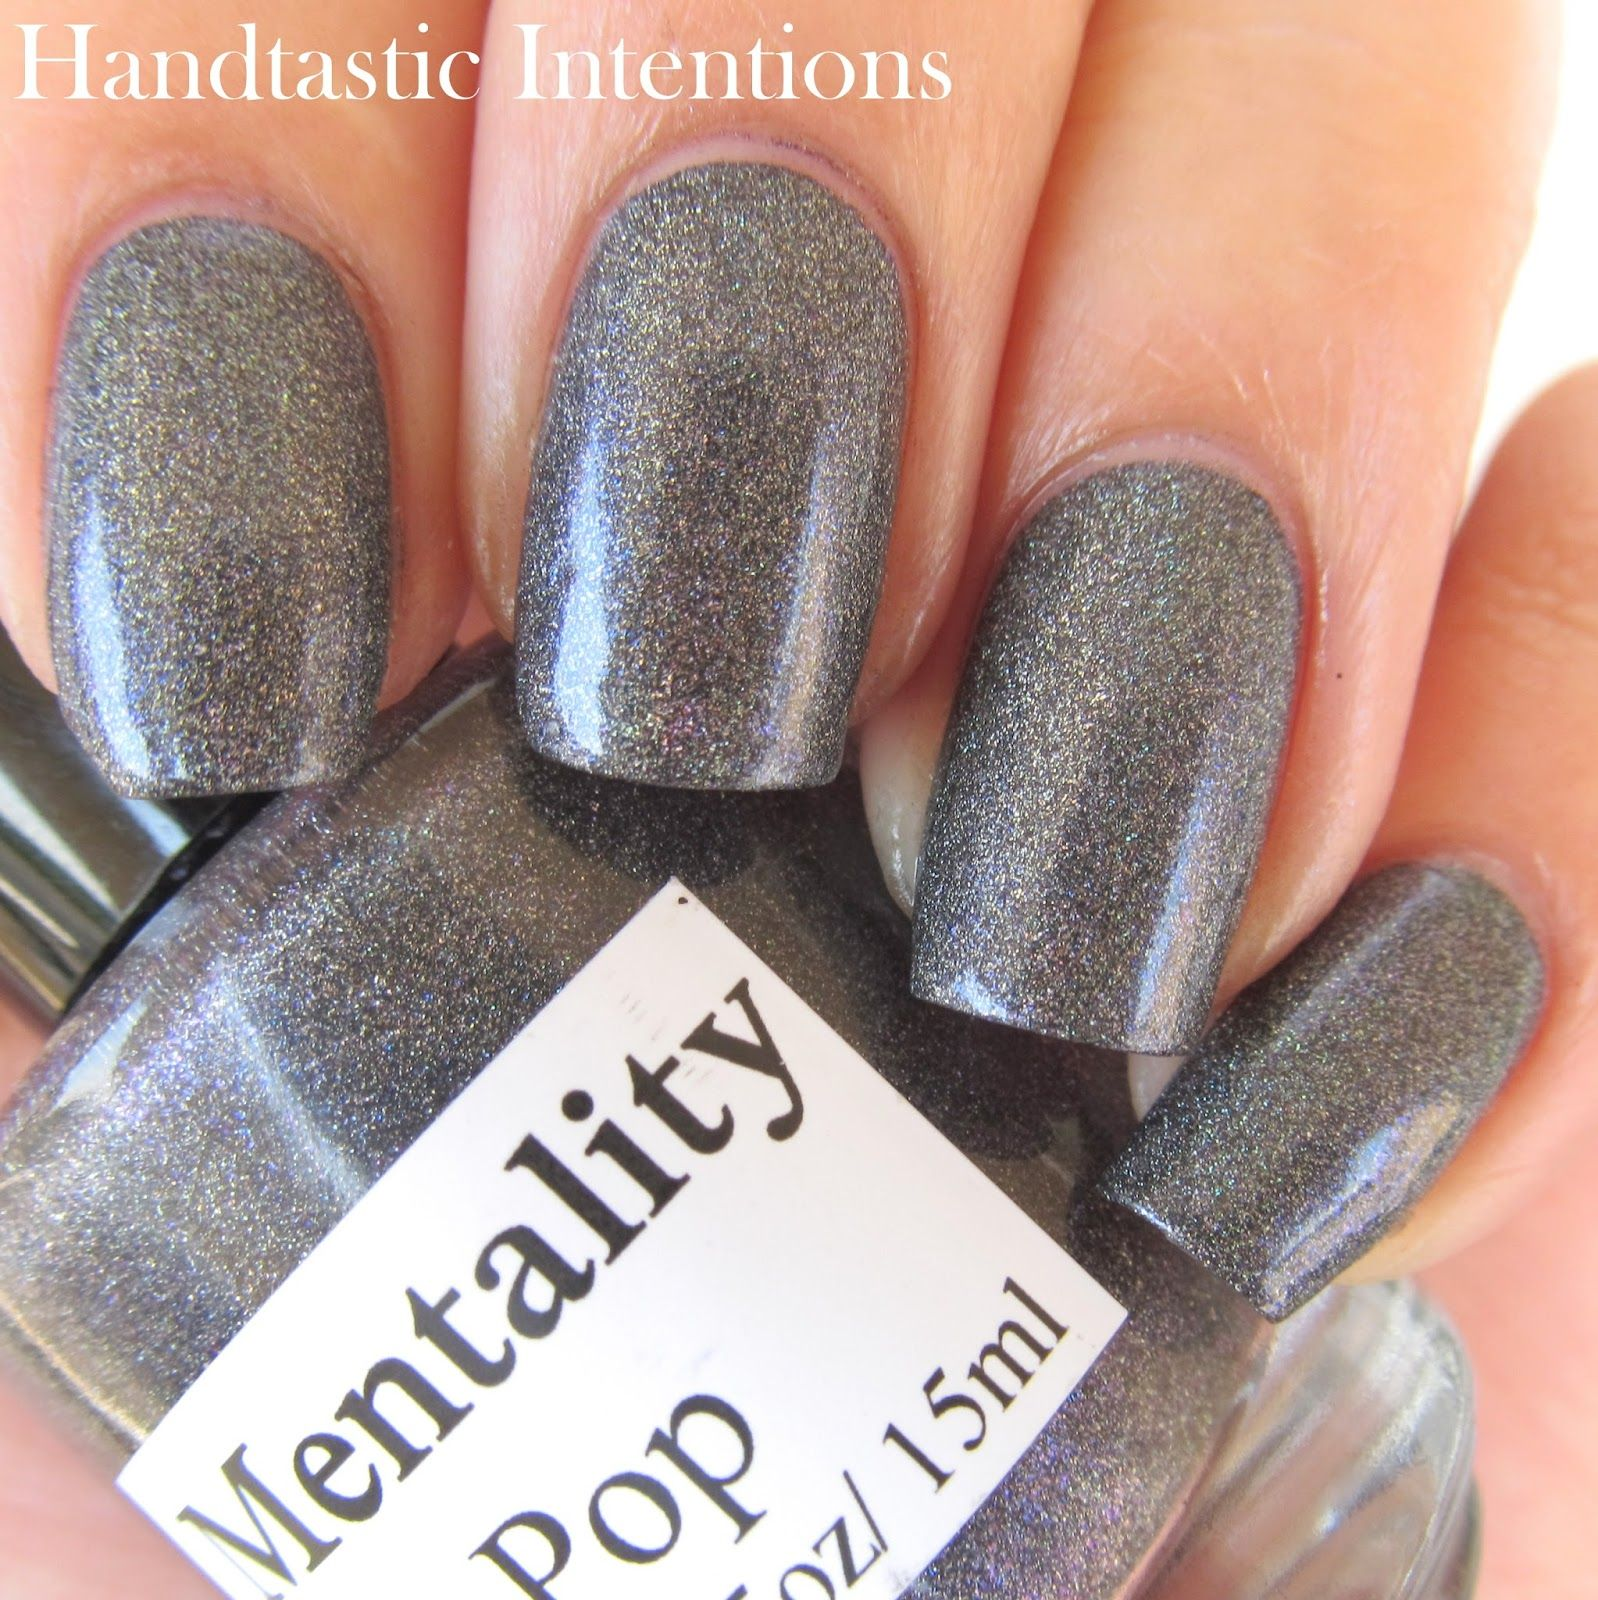 Mentality Sparkplug with glossy topcoat. Swatch by Lacquer